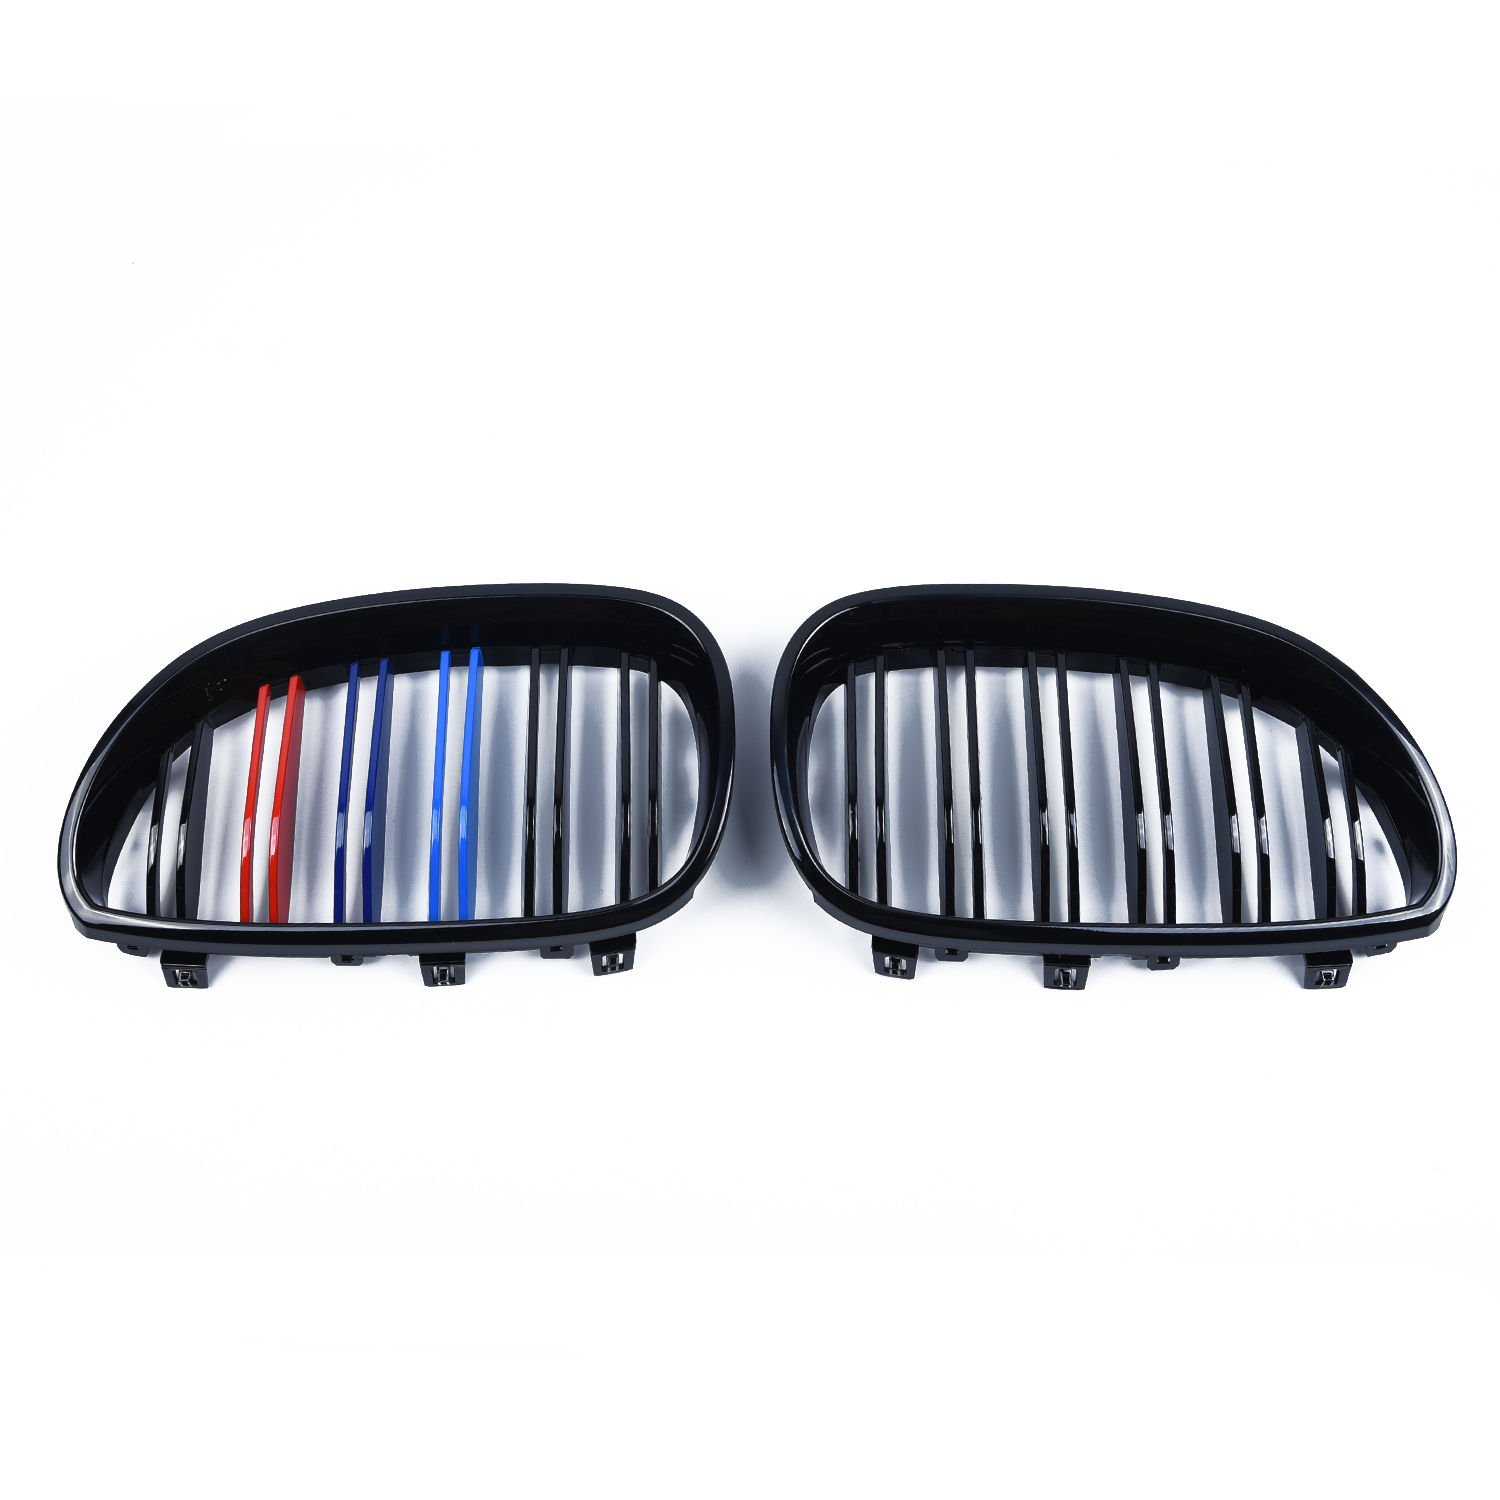 M-Color Grilles Left Gloss Black Front Grill for <font><b>BMW</b></font> E60 <font><b>E61</b></font> Replacement image